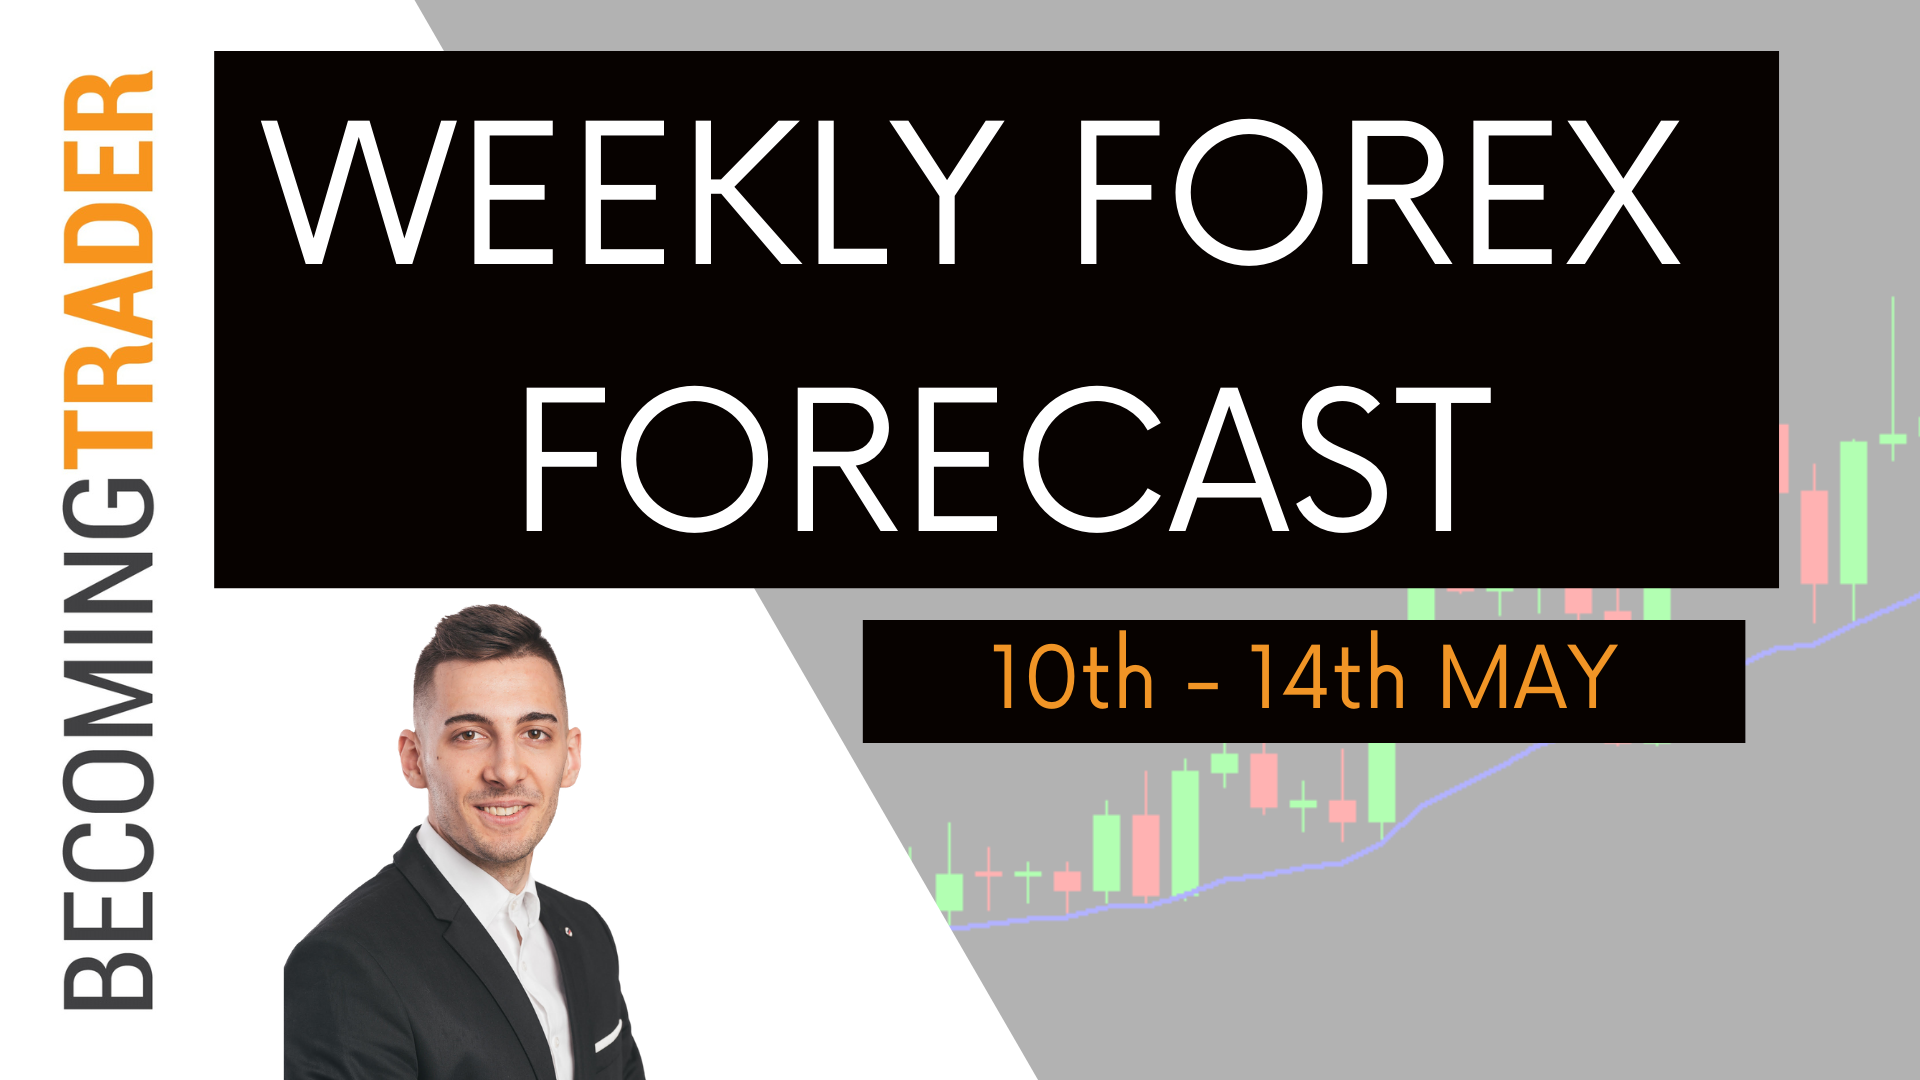 Weekly Forex Forecast 10th to 14th May 2021 | EURUSD , GBPUSD , AUDUSD , NZDUSD , USDCAD , USDJPY